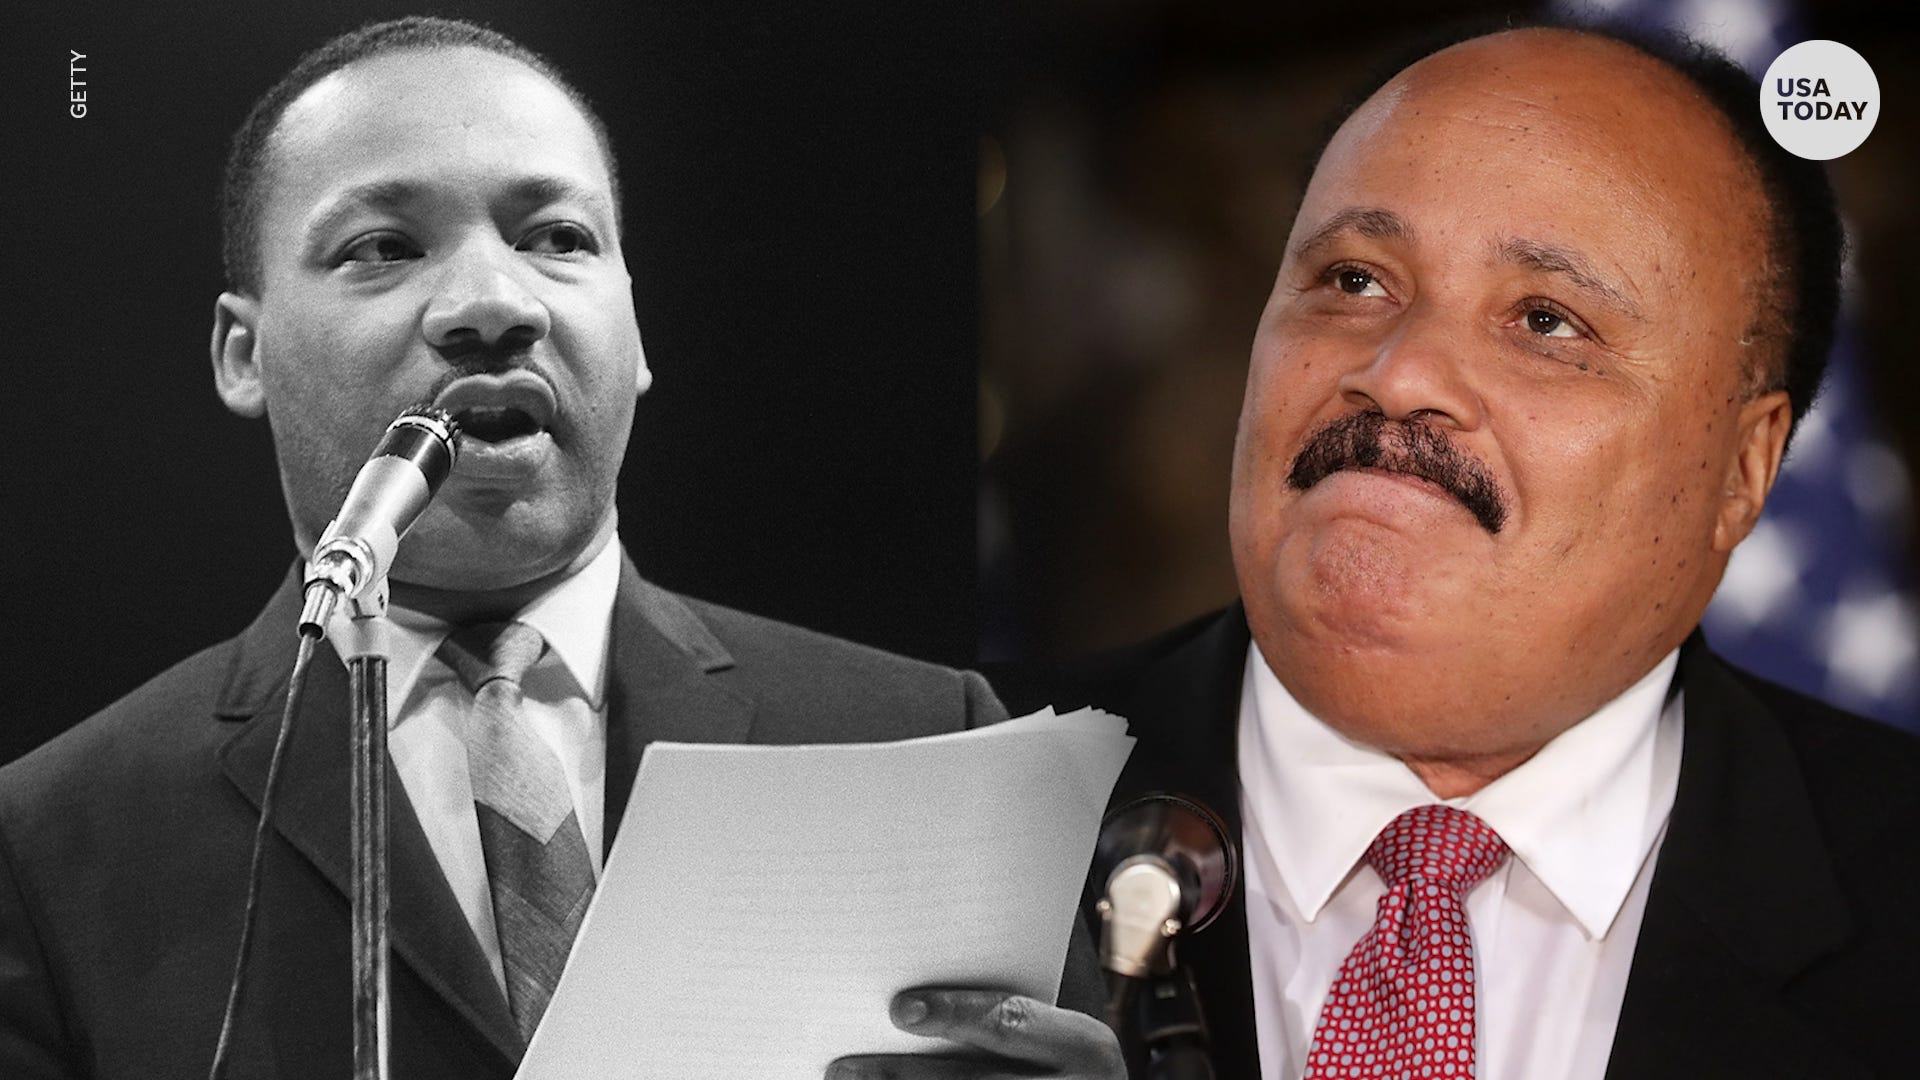 Mlk Day Martin Luther King Iii Wants Holiday To Renew Equality Fight